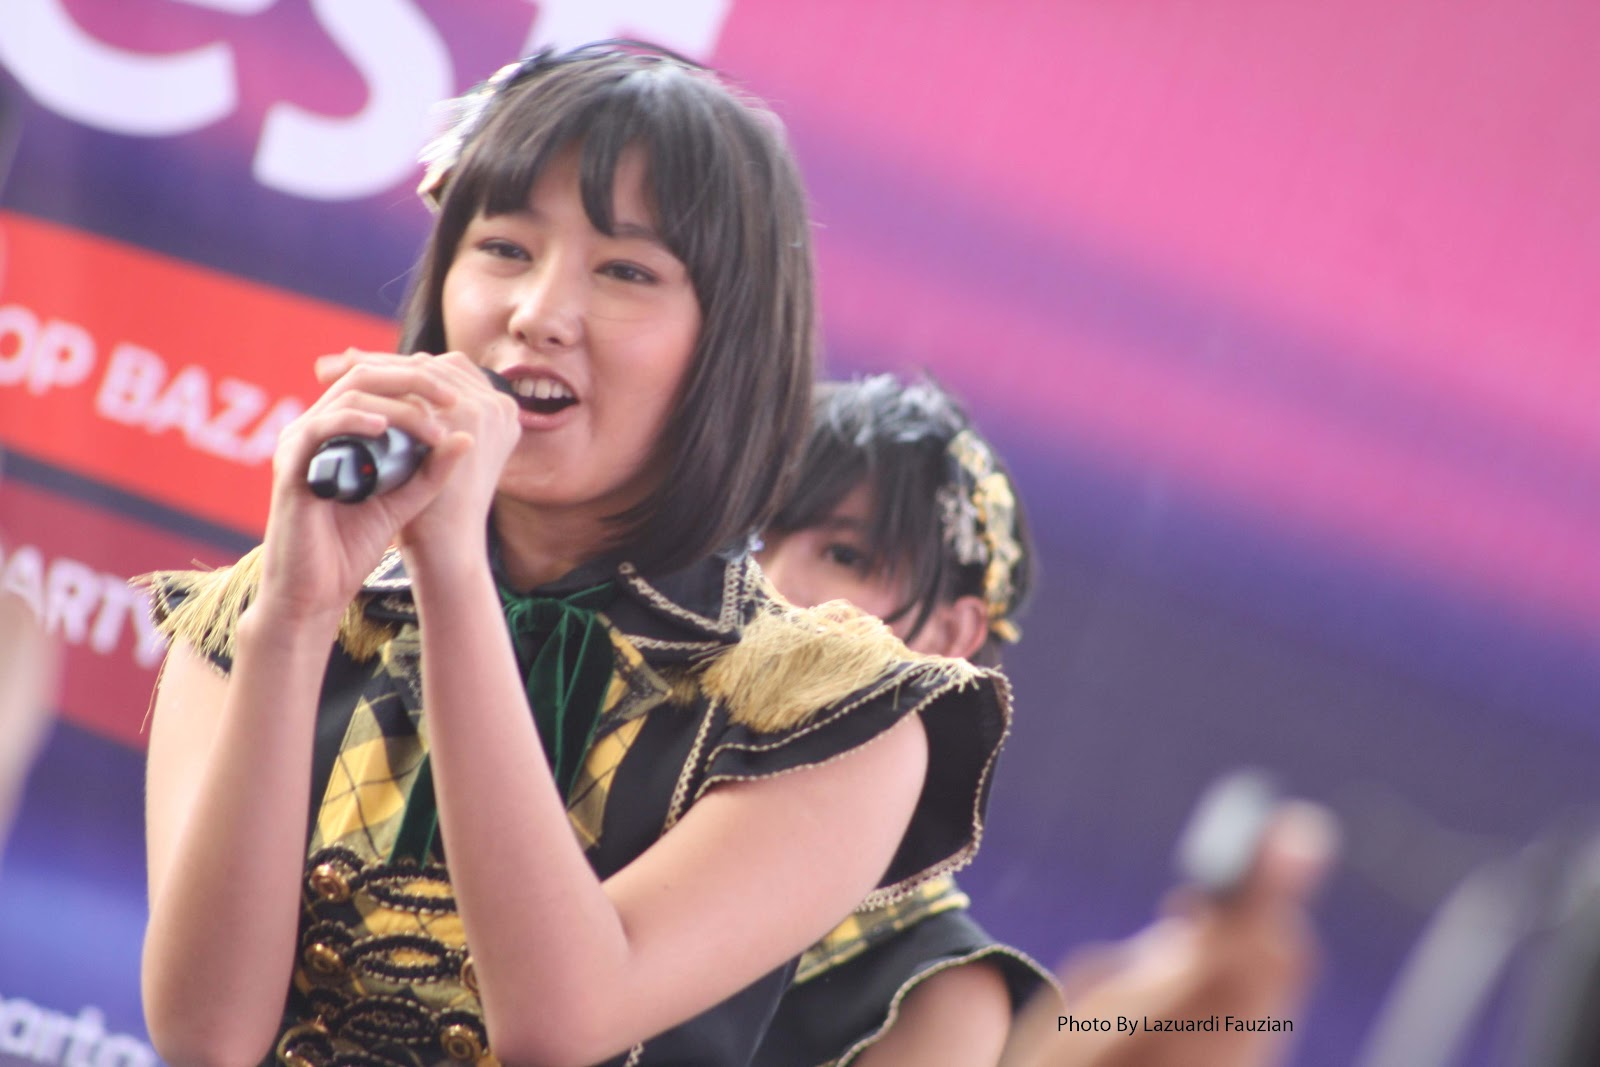 Dhike JKT48 at IFest